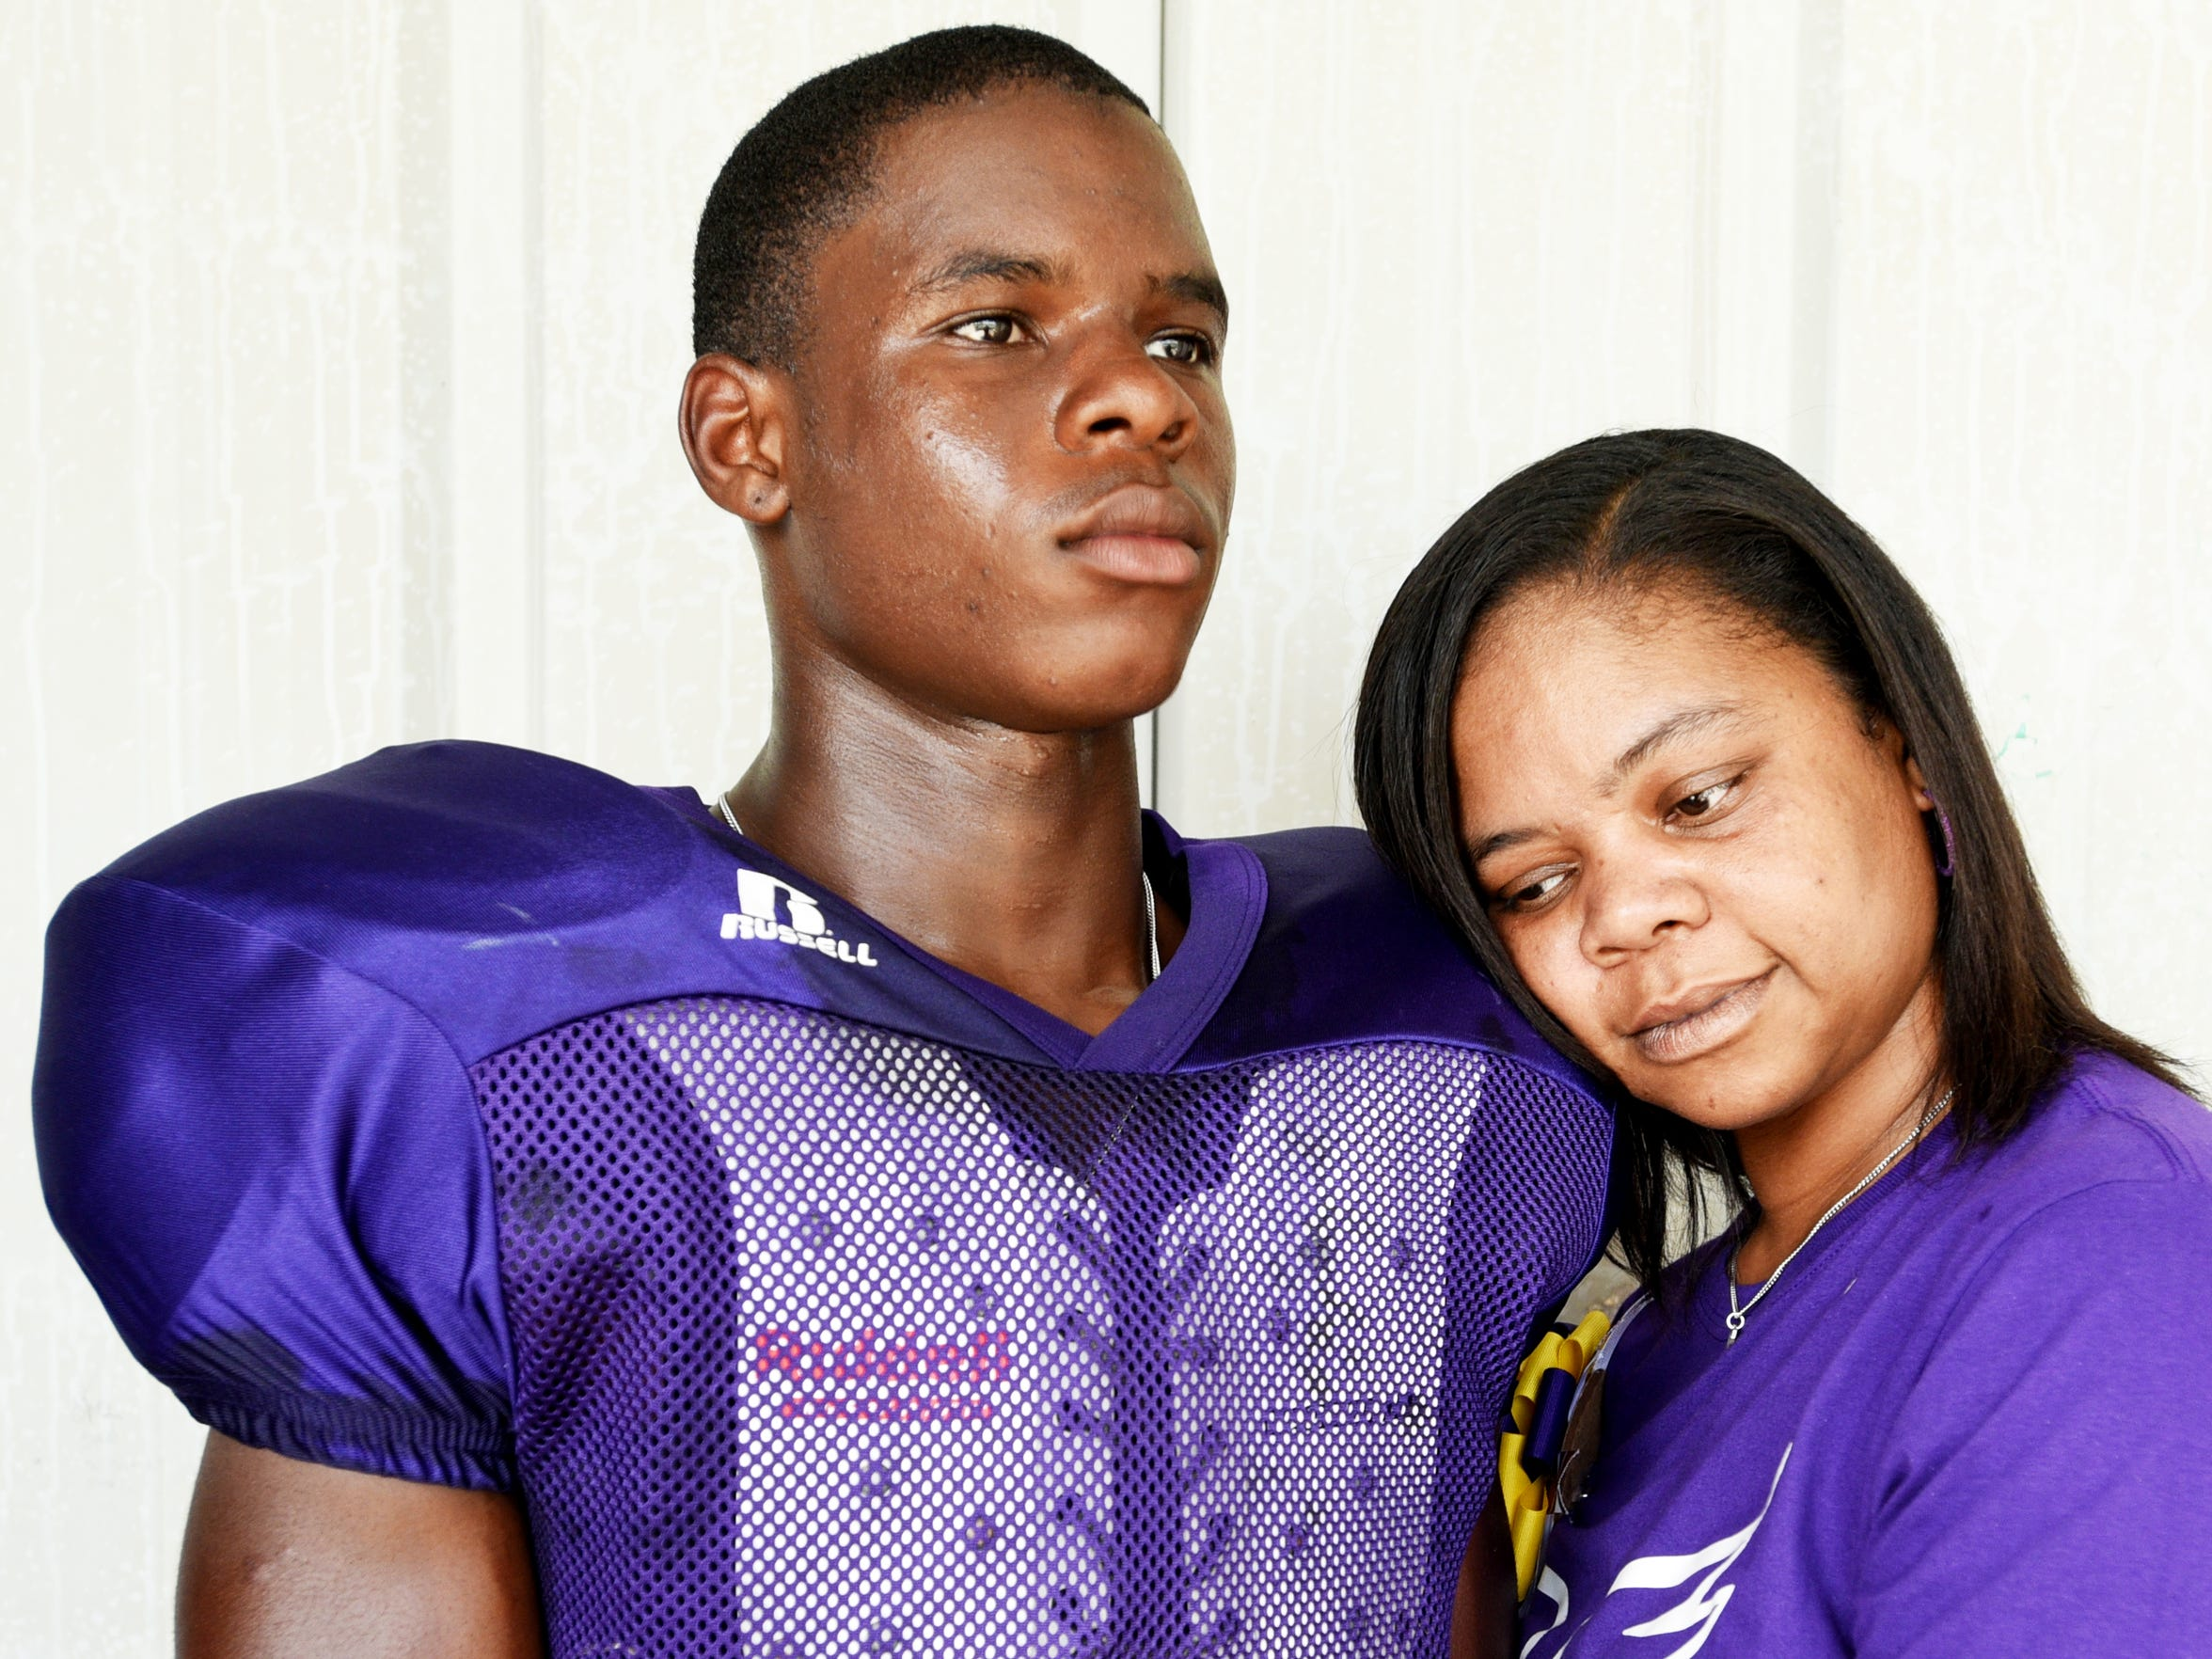 Janetta Brakefield shares a moment with her son, Xavier Simpson, twin brother of Javier Simpson, who drowned in the Sabine River in 2018.